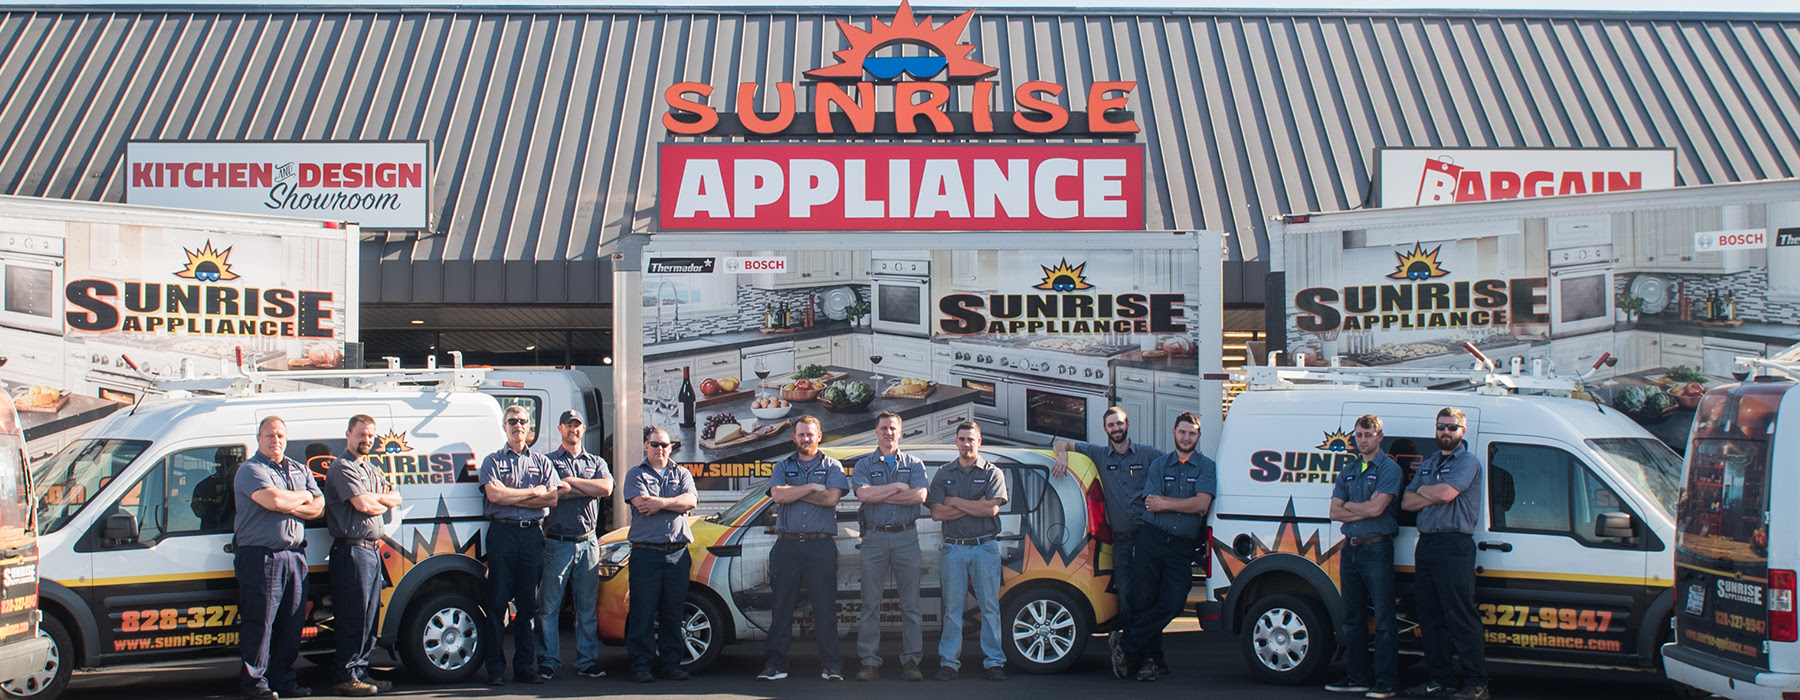 Sunrise Appliance About Us Appliances Hickory Nc 28602 And